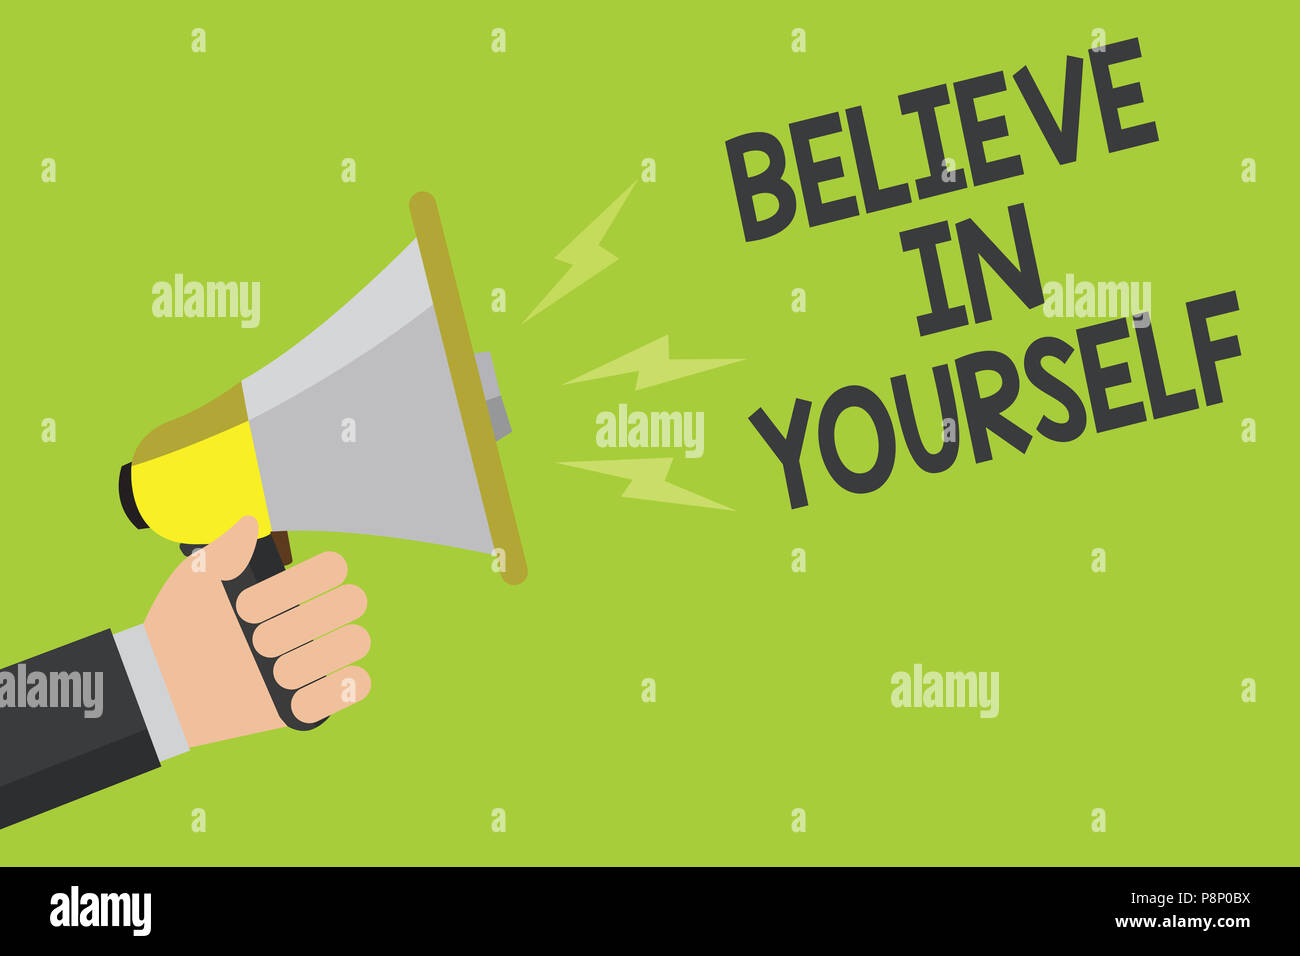 Handwriting Text Believe In Yourself Concept Meaning Encouraging